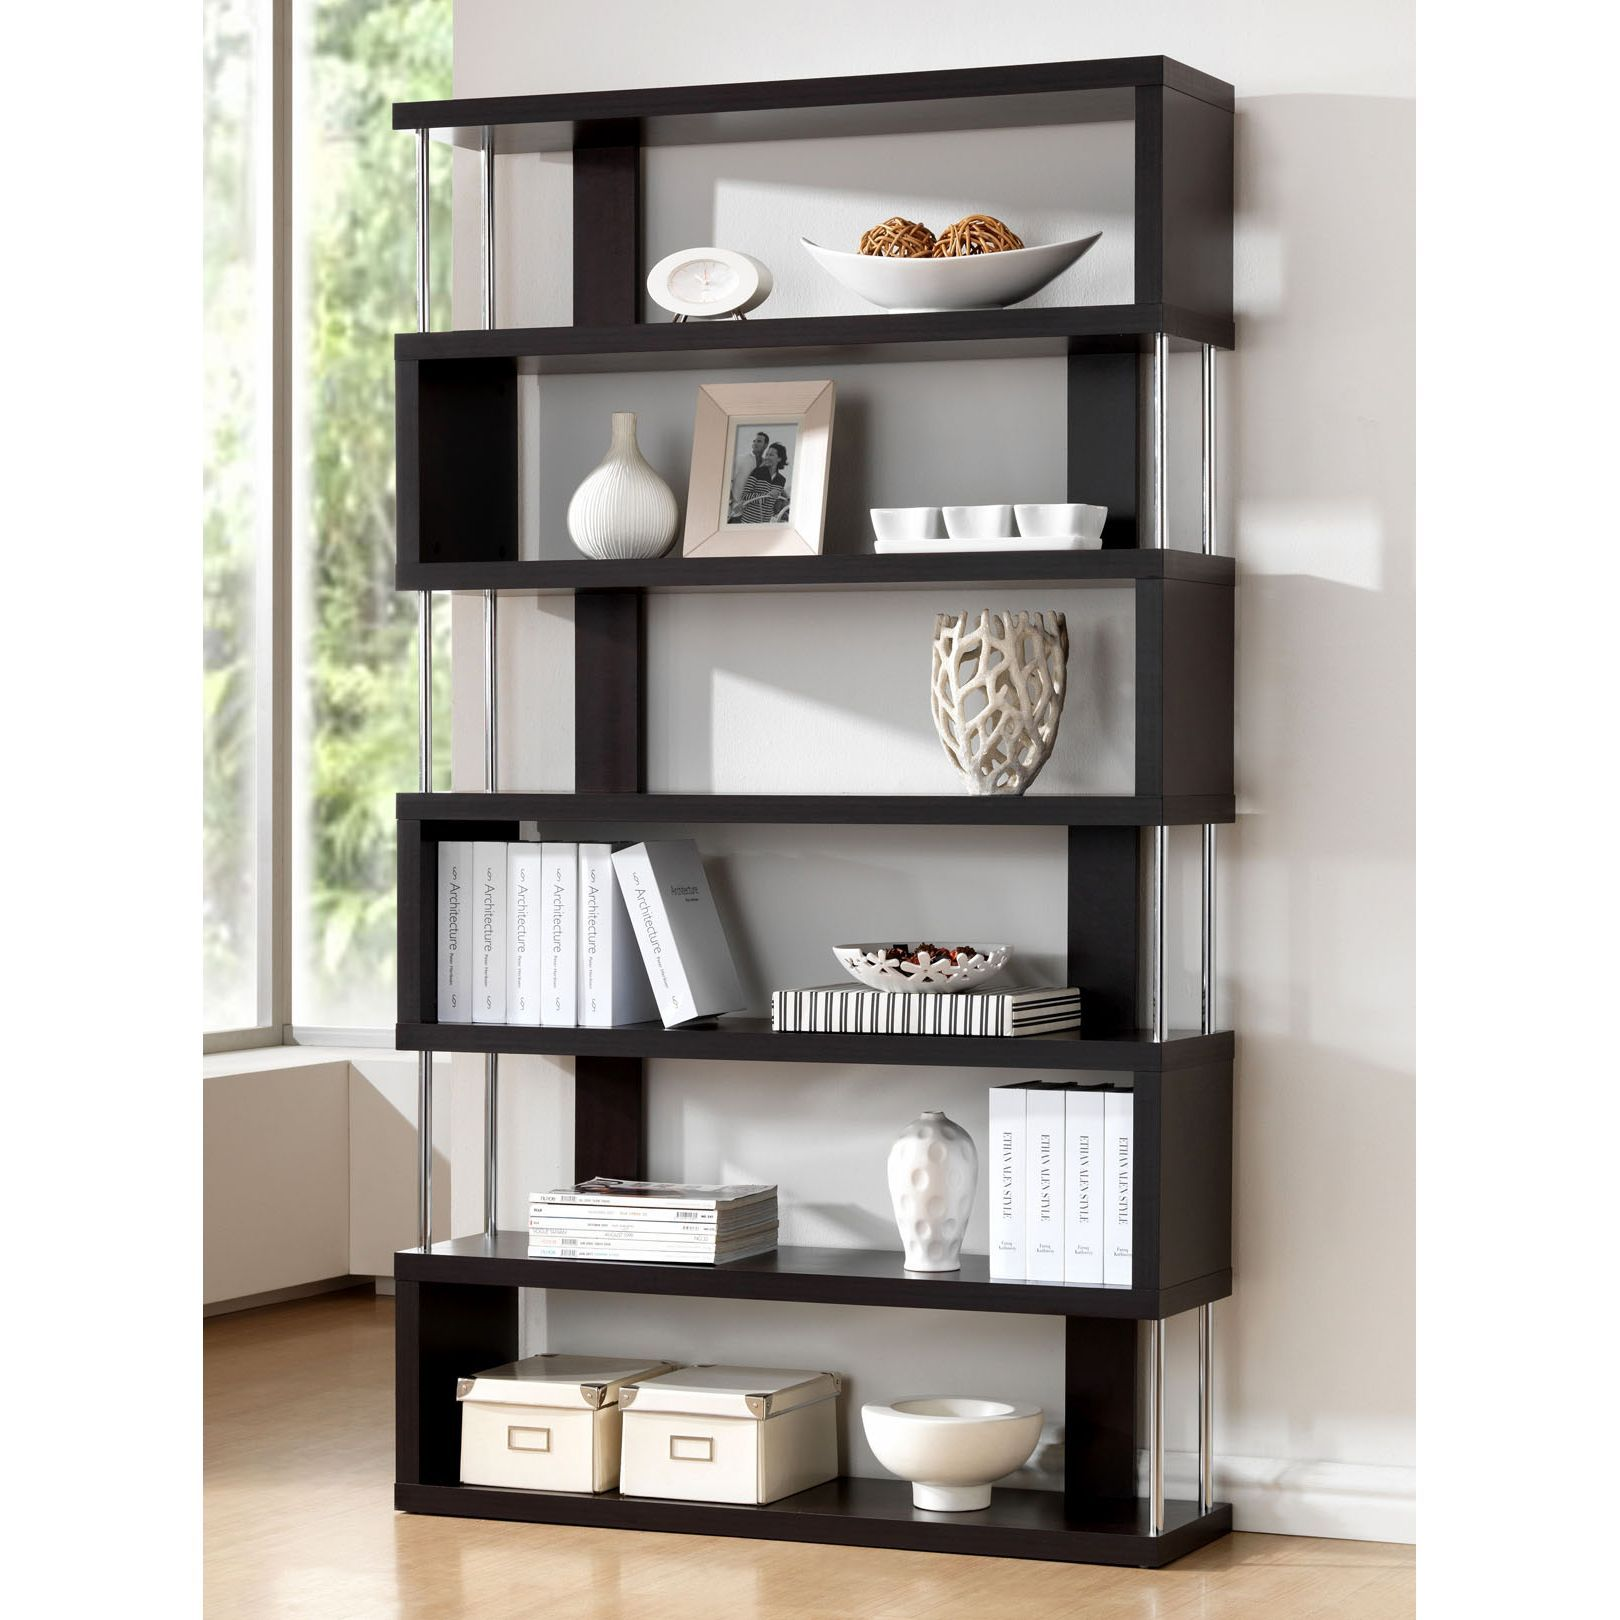 Online Shopping Bedding Furniture Electronics Jewelry Clothing More Modern Shelving Home Decor Modern Bookcase